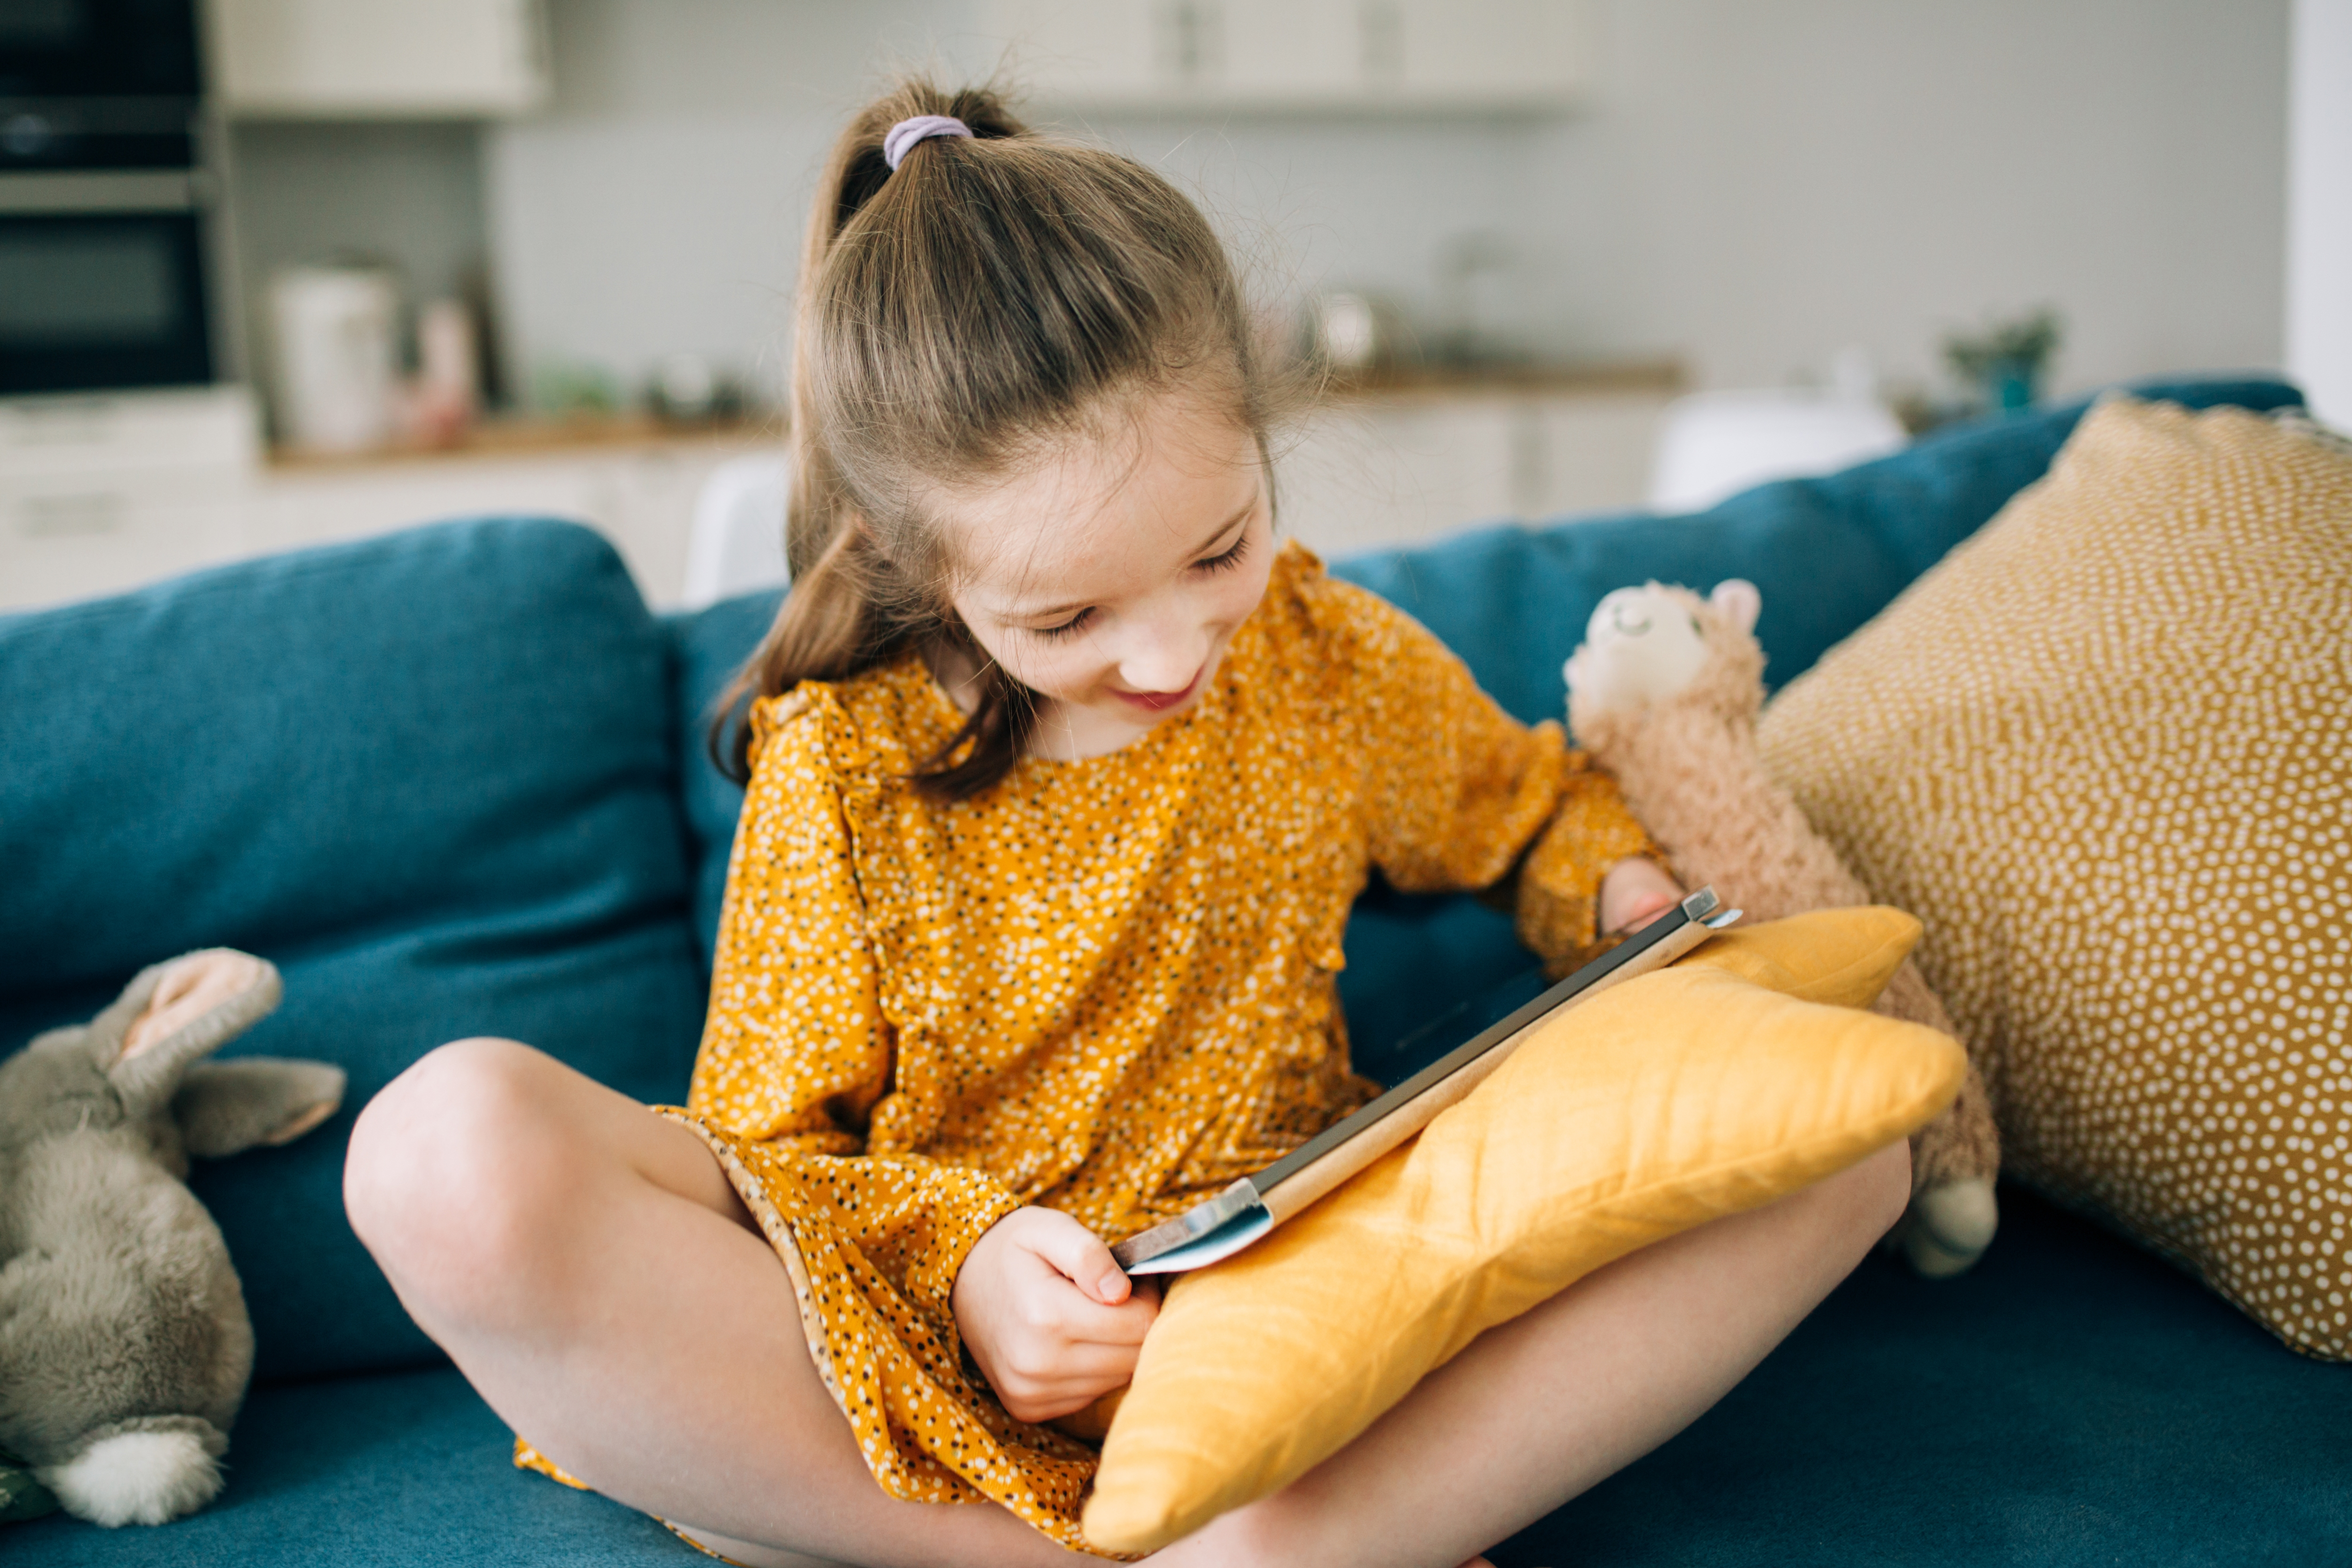 a-girls-is-sitting-on-a-sofa-with-tablet-and-toys-SCK855W